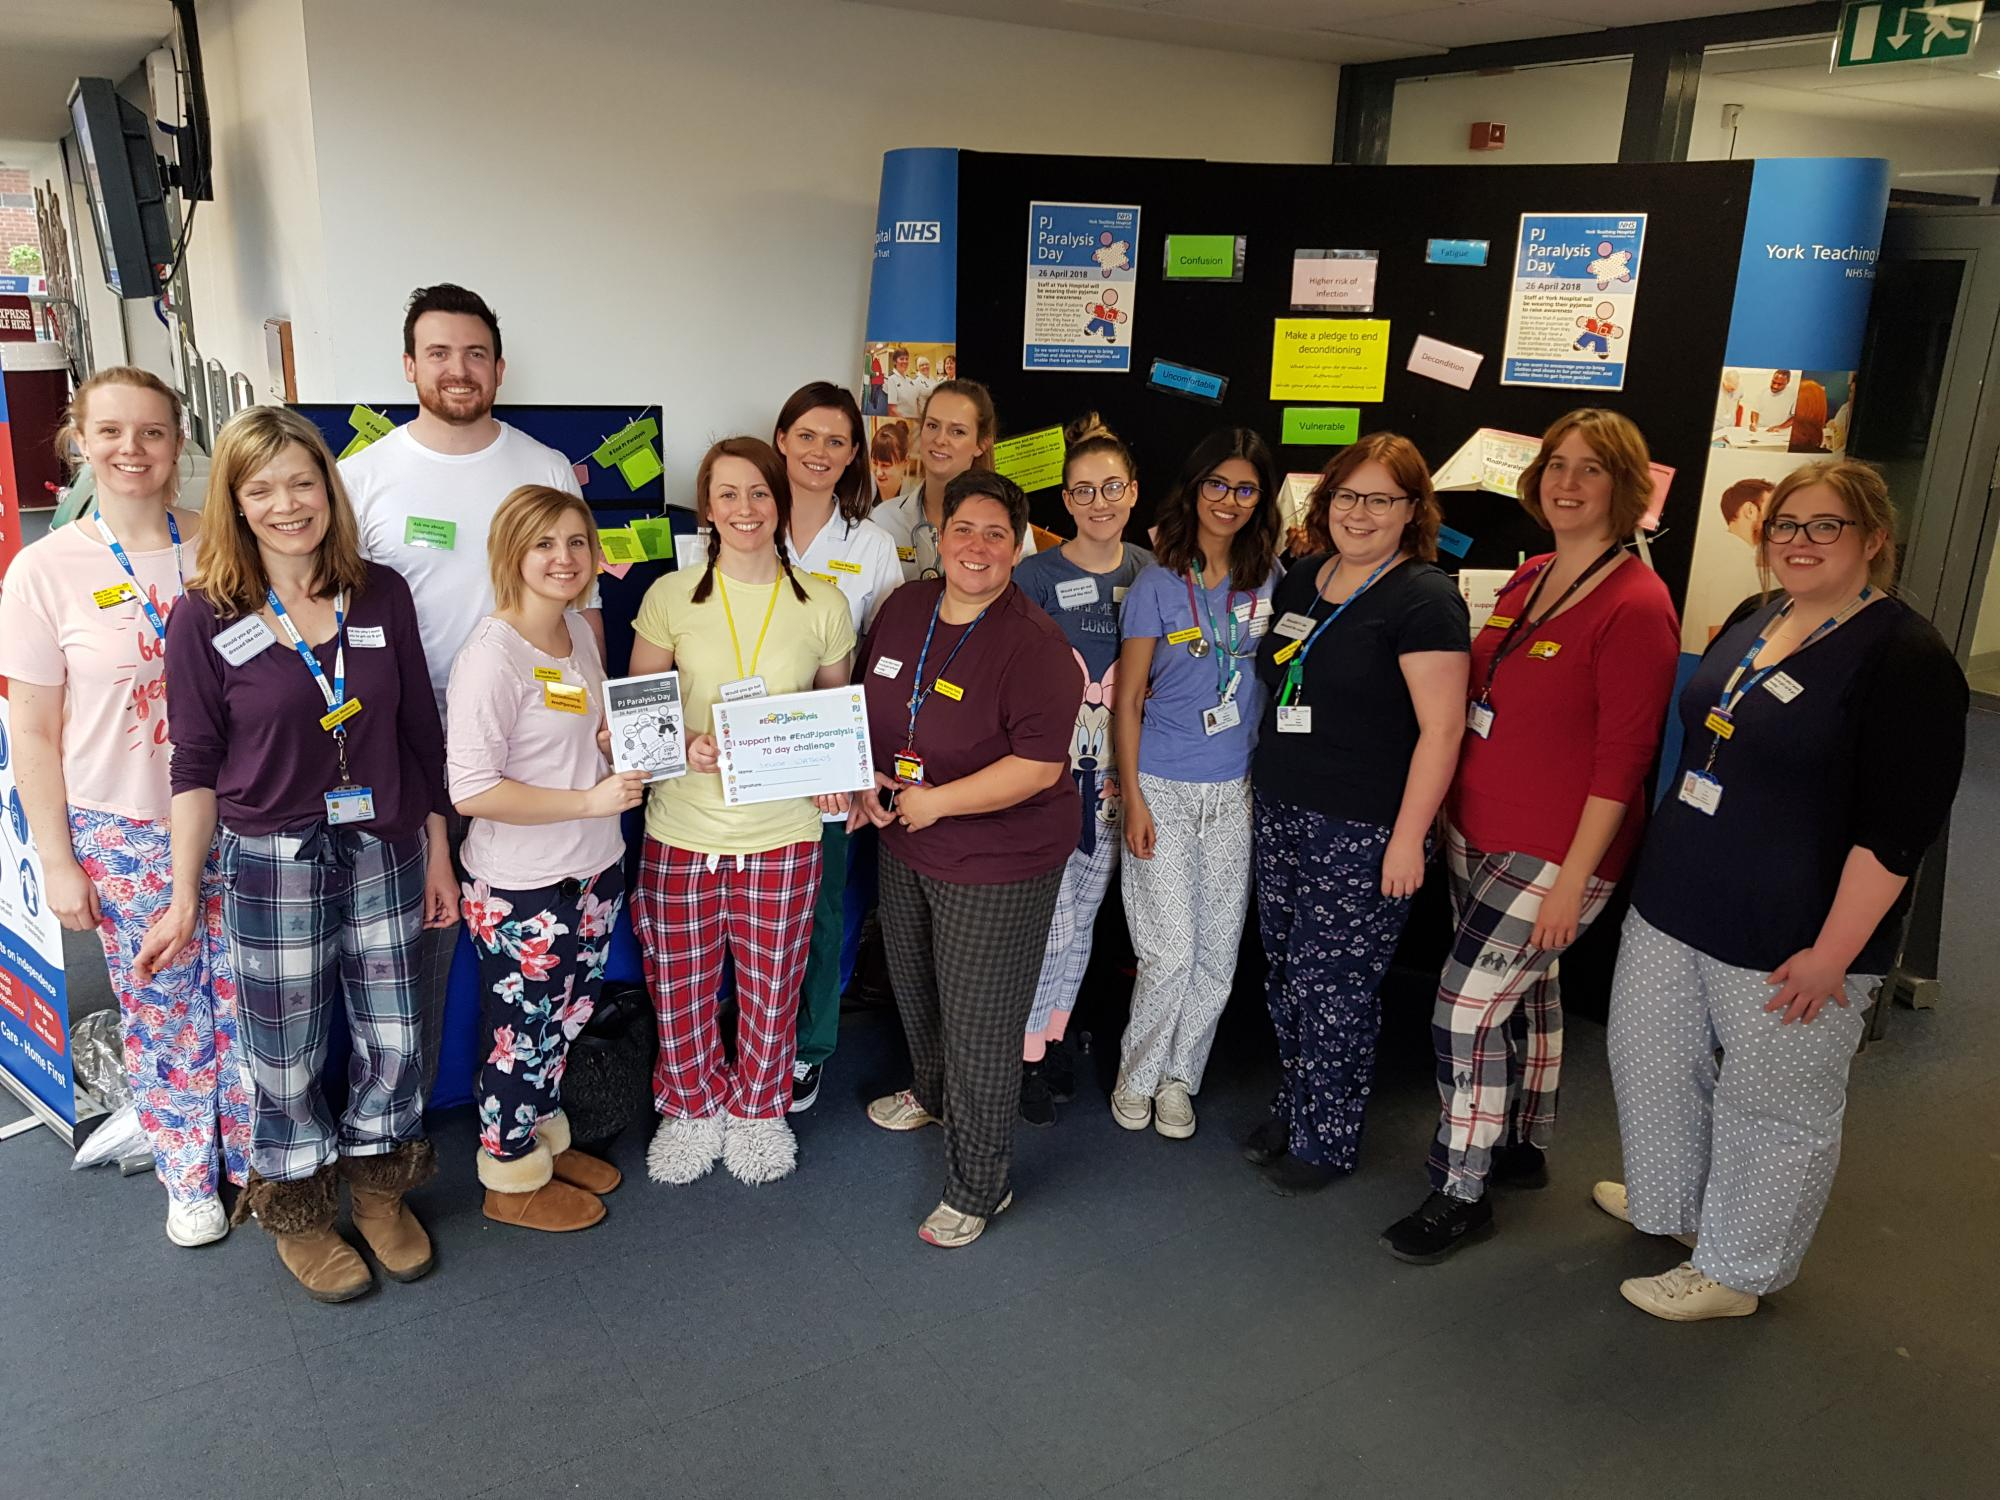 PJ Paralysis Day photo